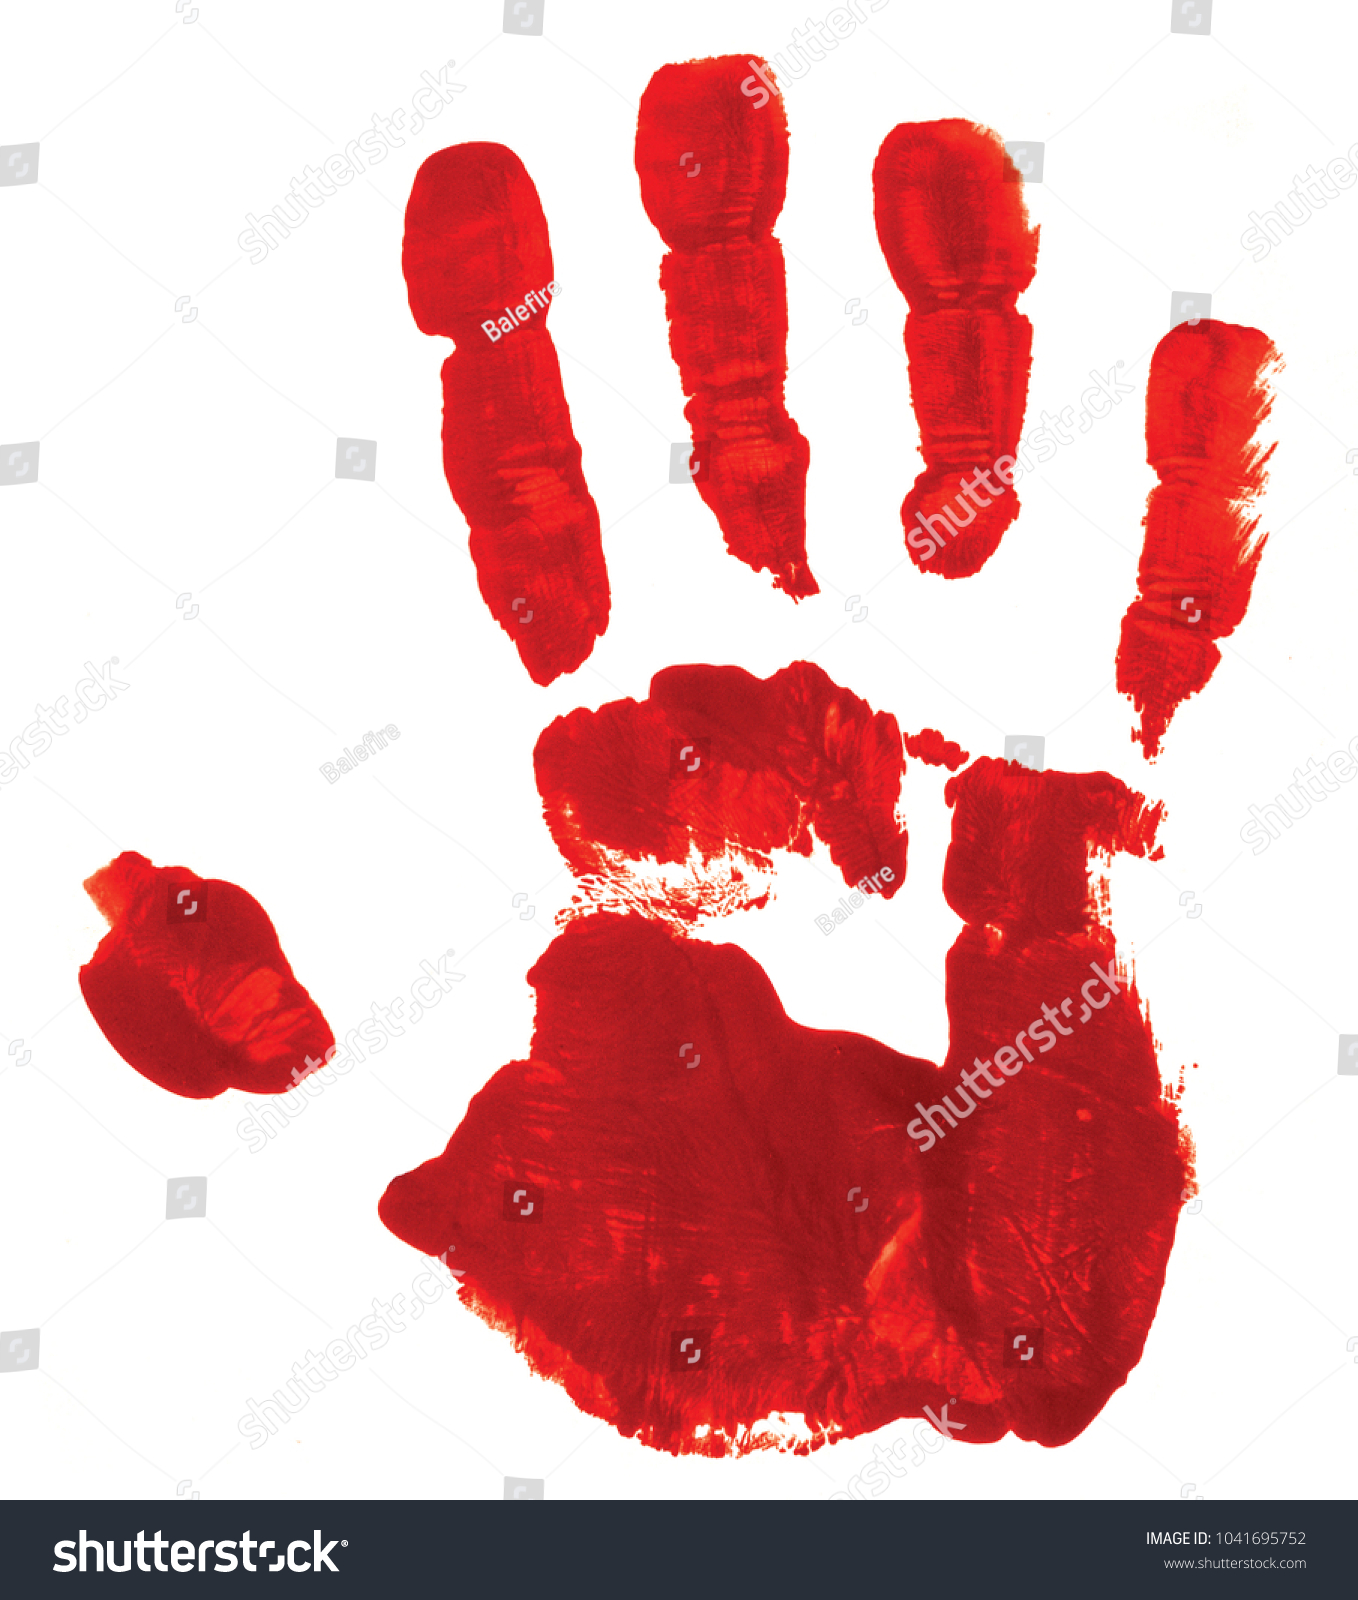 Red hand print on white background stock photo 1041695752 shutterstock red hand print on white background suggesting a bloody hand a possible symbol of guilt buycottarizona Gallery